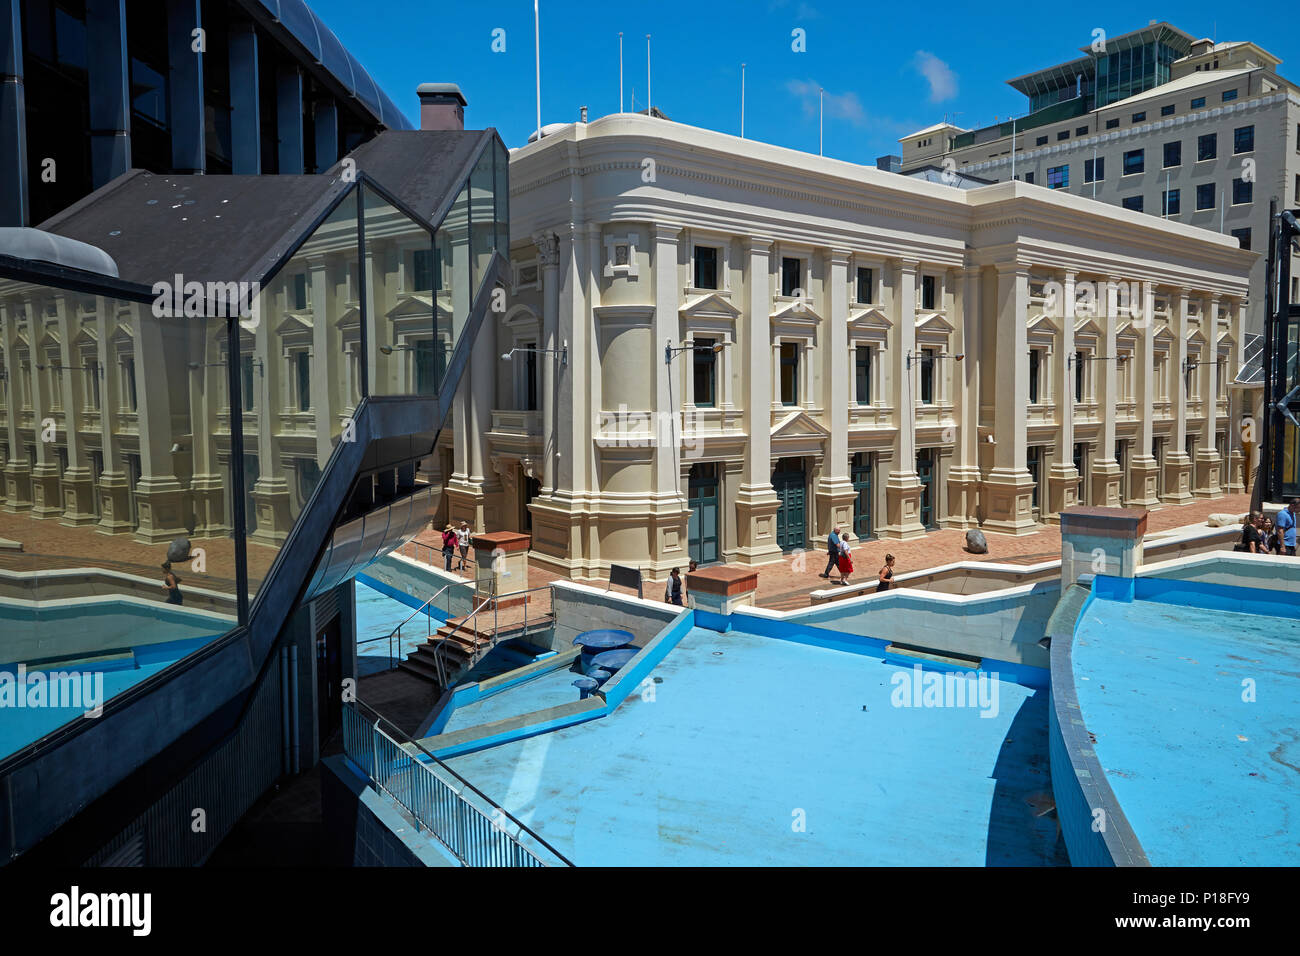 Wellington Town Hall, water feature, and reflection in Michael Fowler Centre, Civic Square, Wellington, North Island, New Zealand Stock Photo